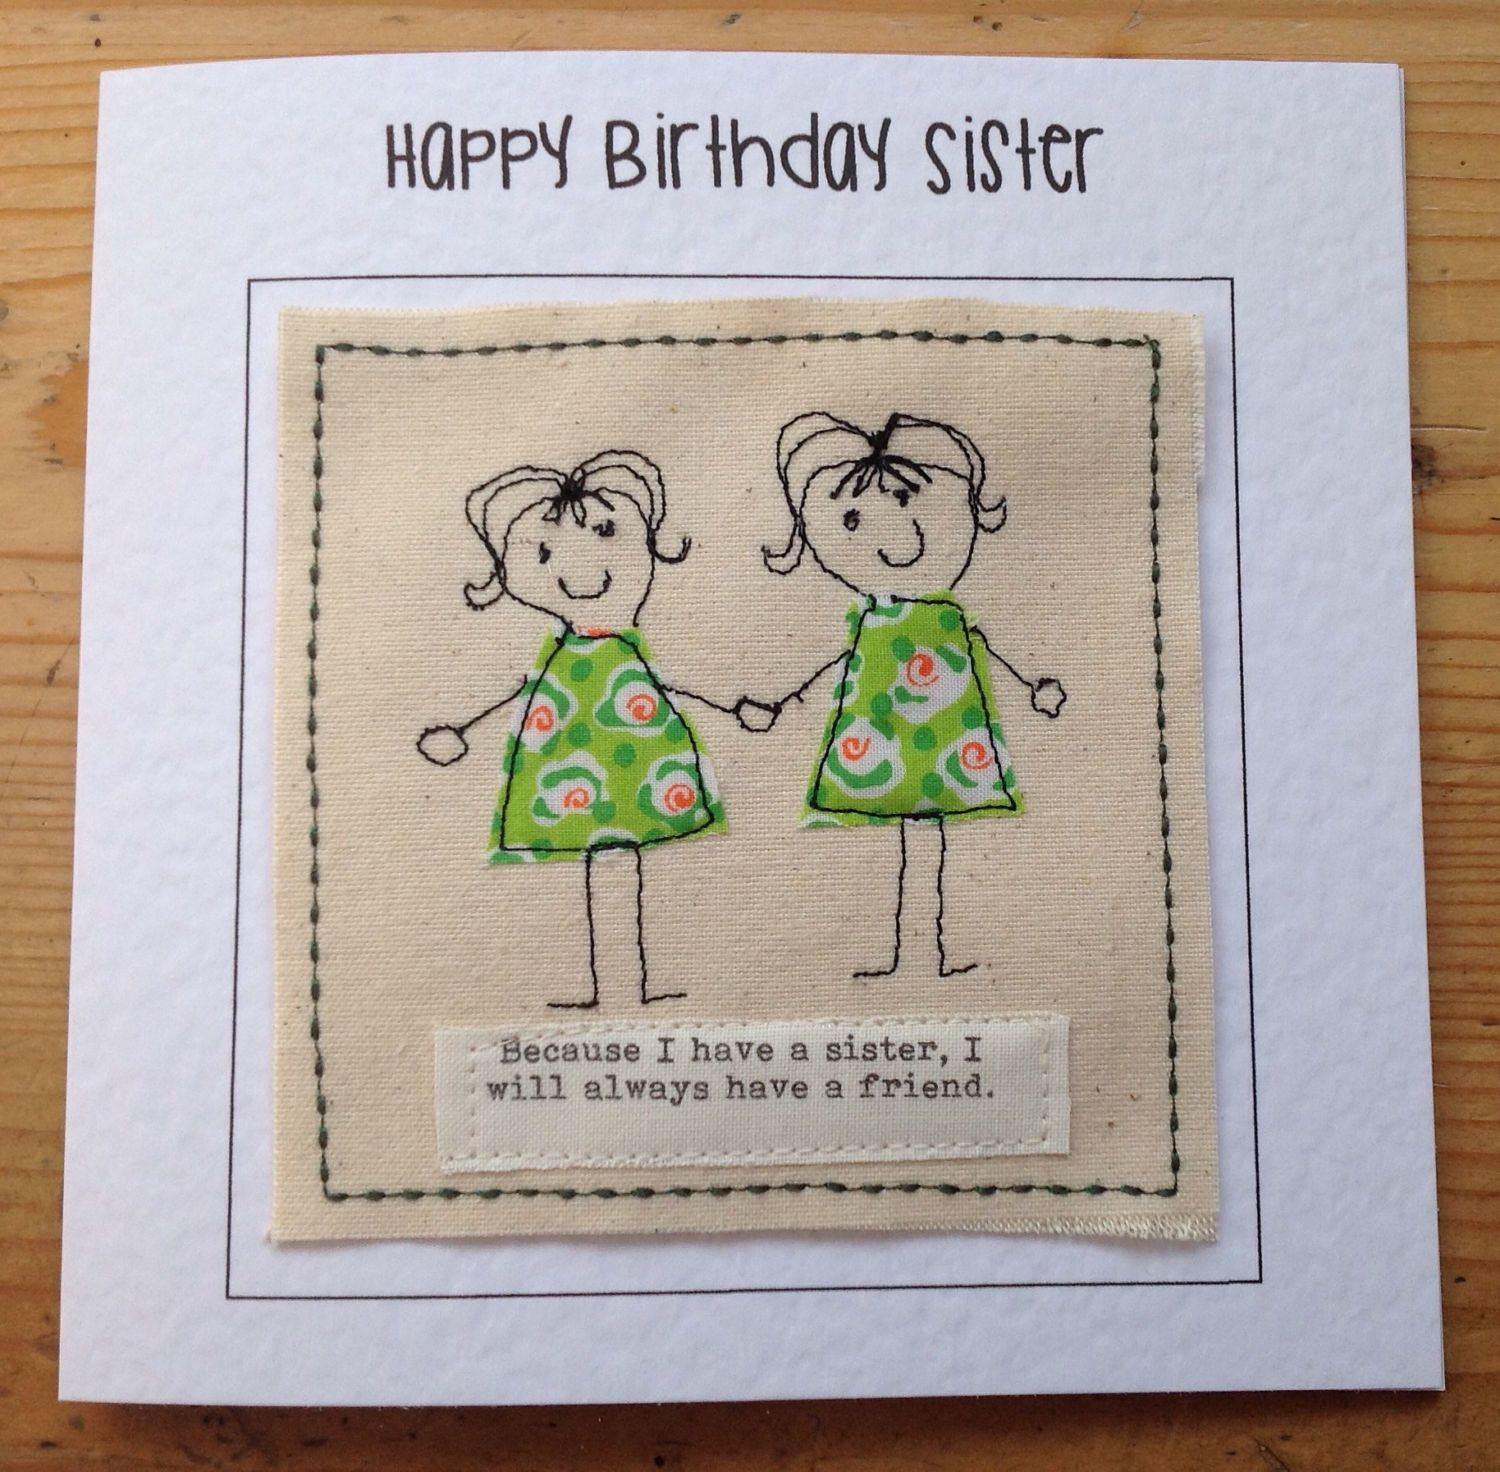 Handmade birthday card for sister with special quote twin sister handmade birthday card for sister with special quote twin sister birthday sister get well sister thank bookmarktalkfo